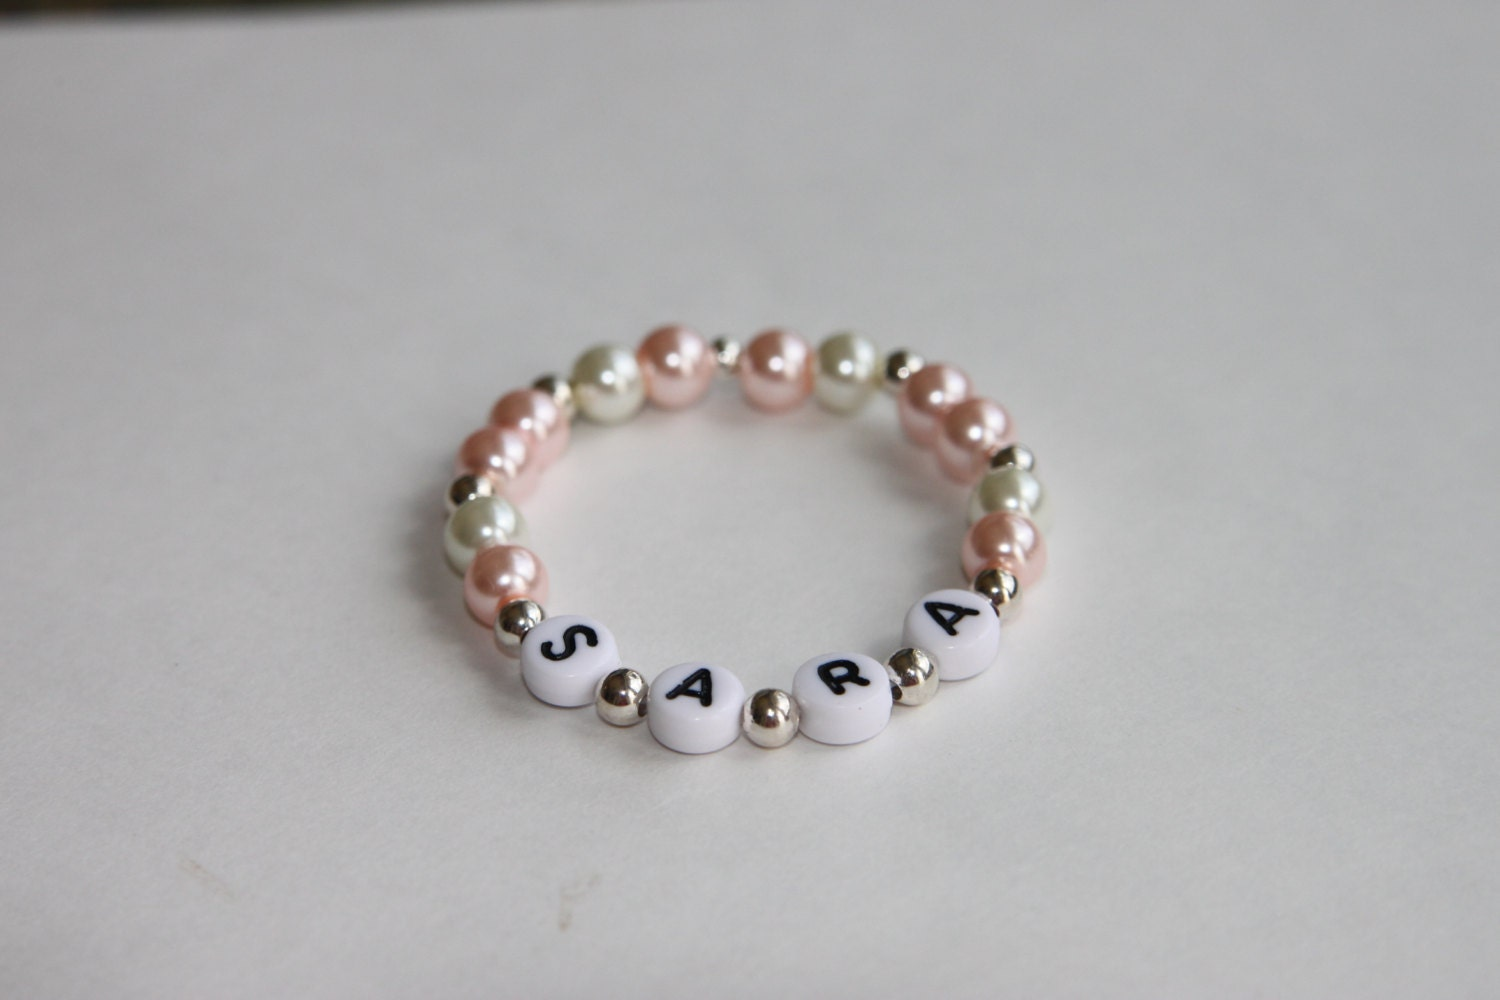 Child Baby Swarvoski Name Bracelet ID bracelet by